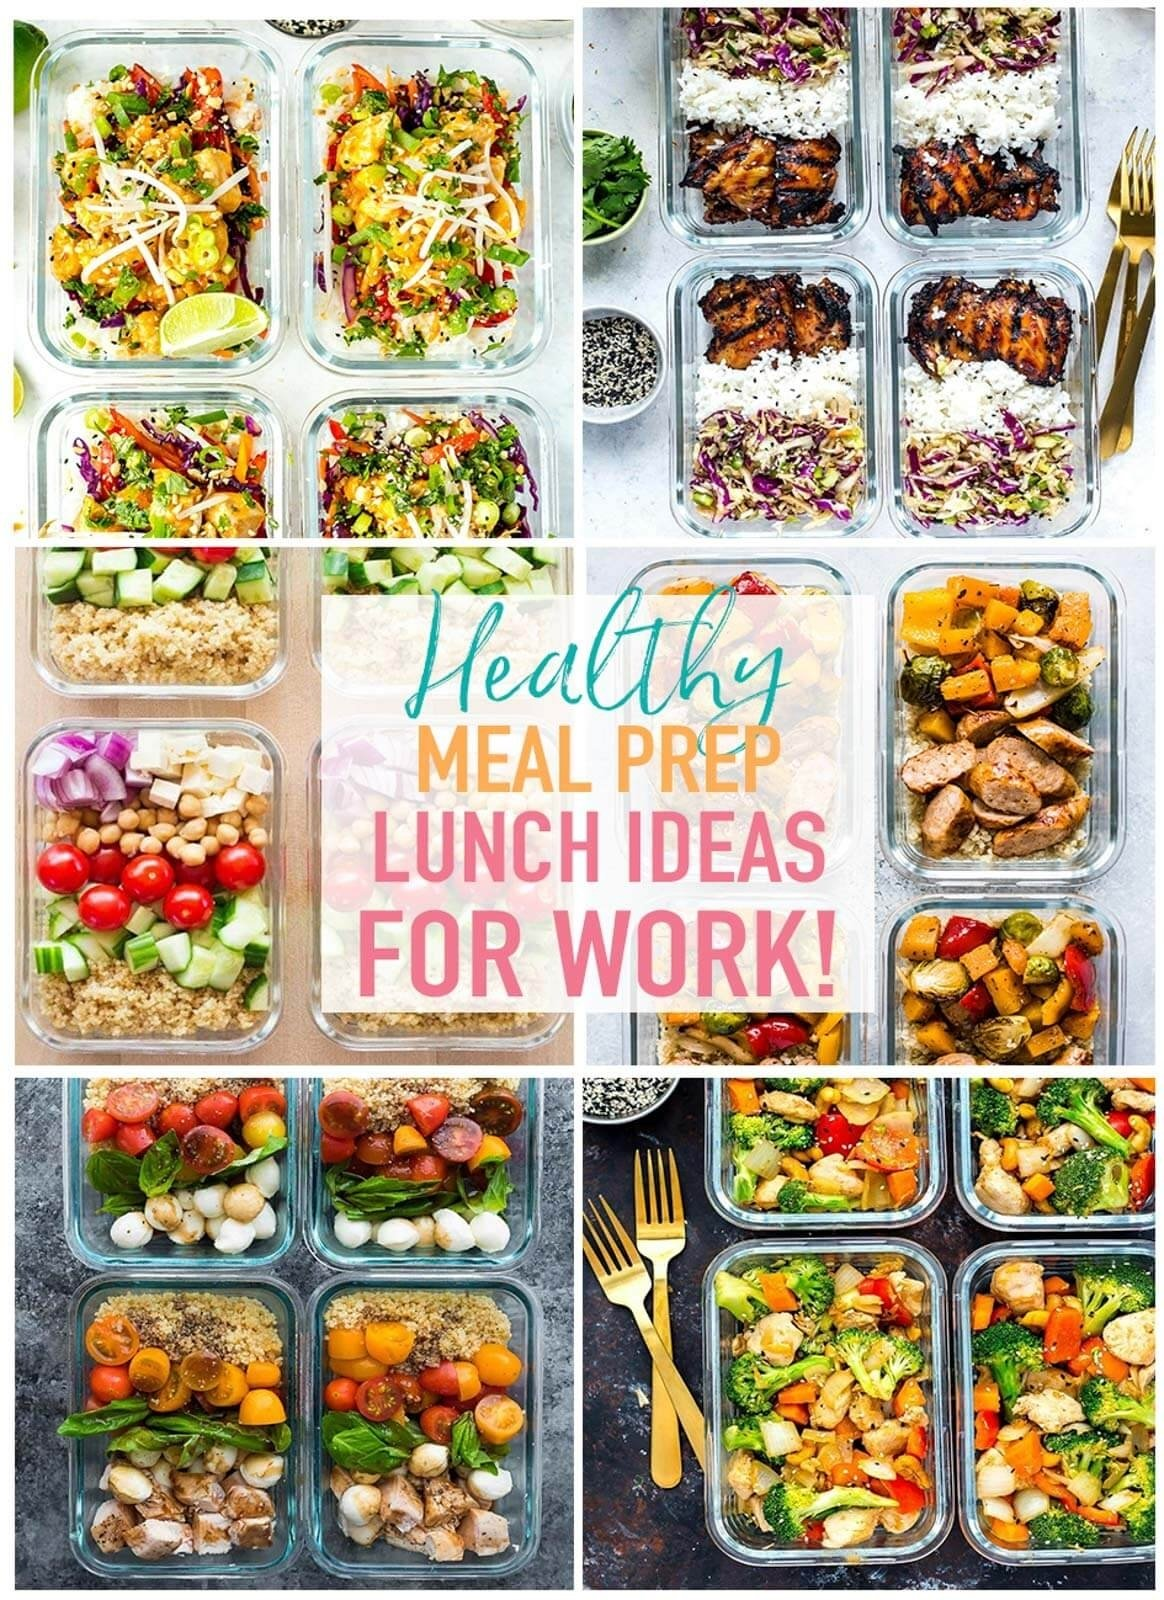 10 Most Recommended Ideas For Lunch At Work 20 easy healthy meal prep lunch ideas for work the girl on bloor 3 2020